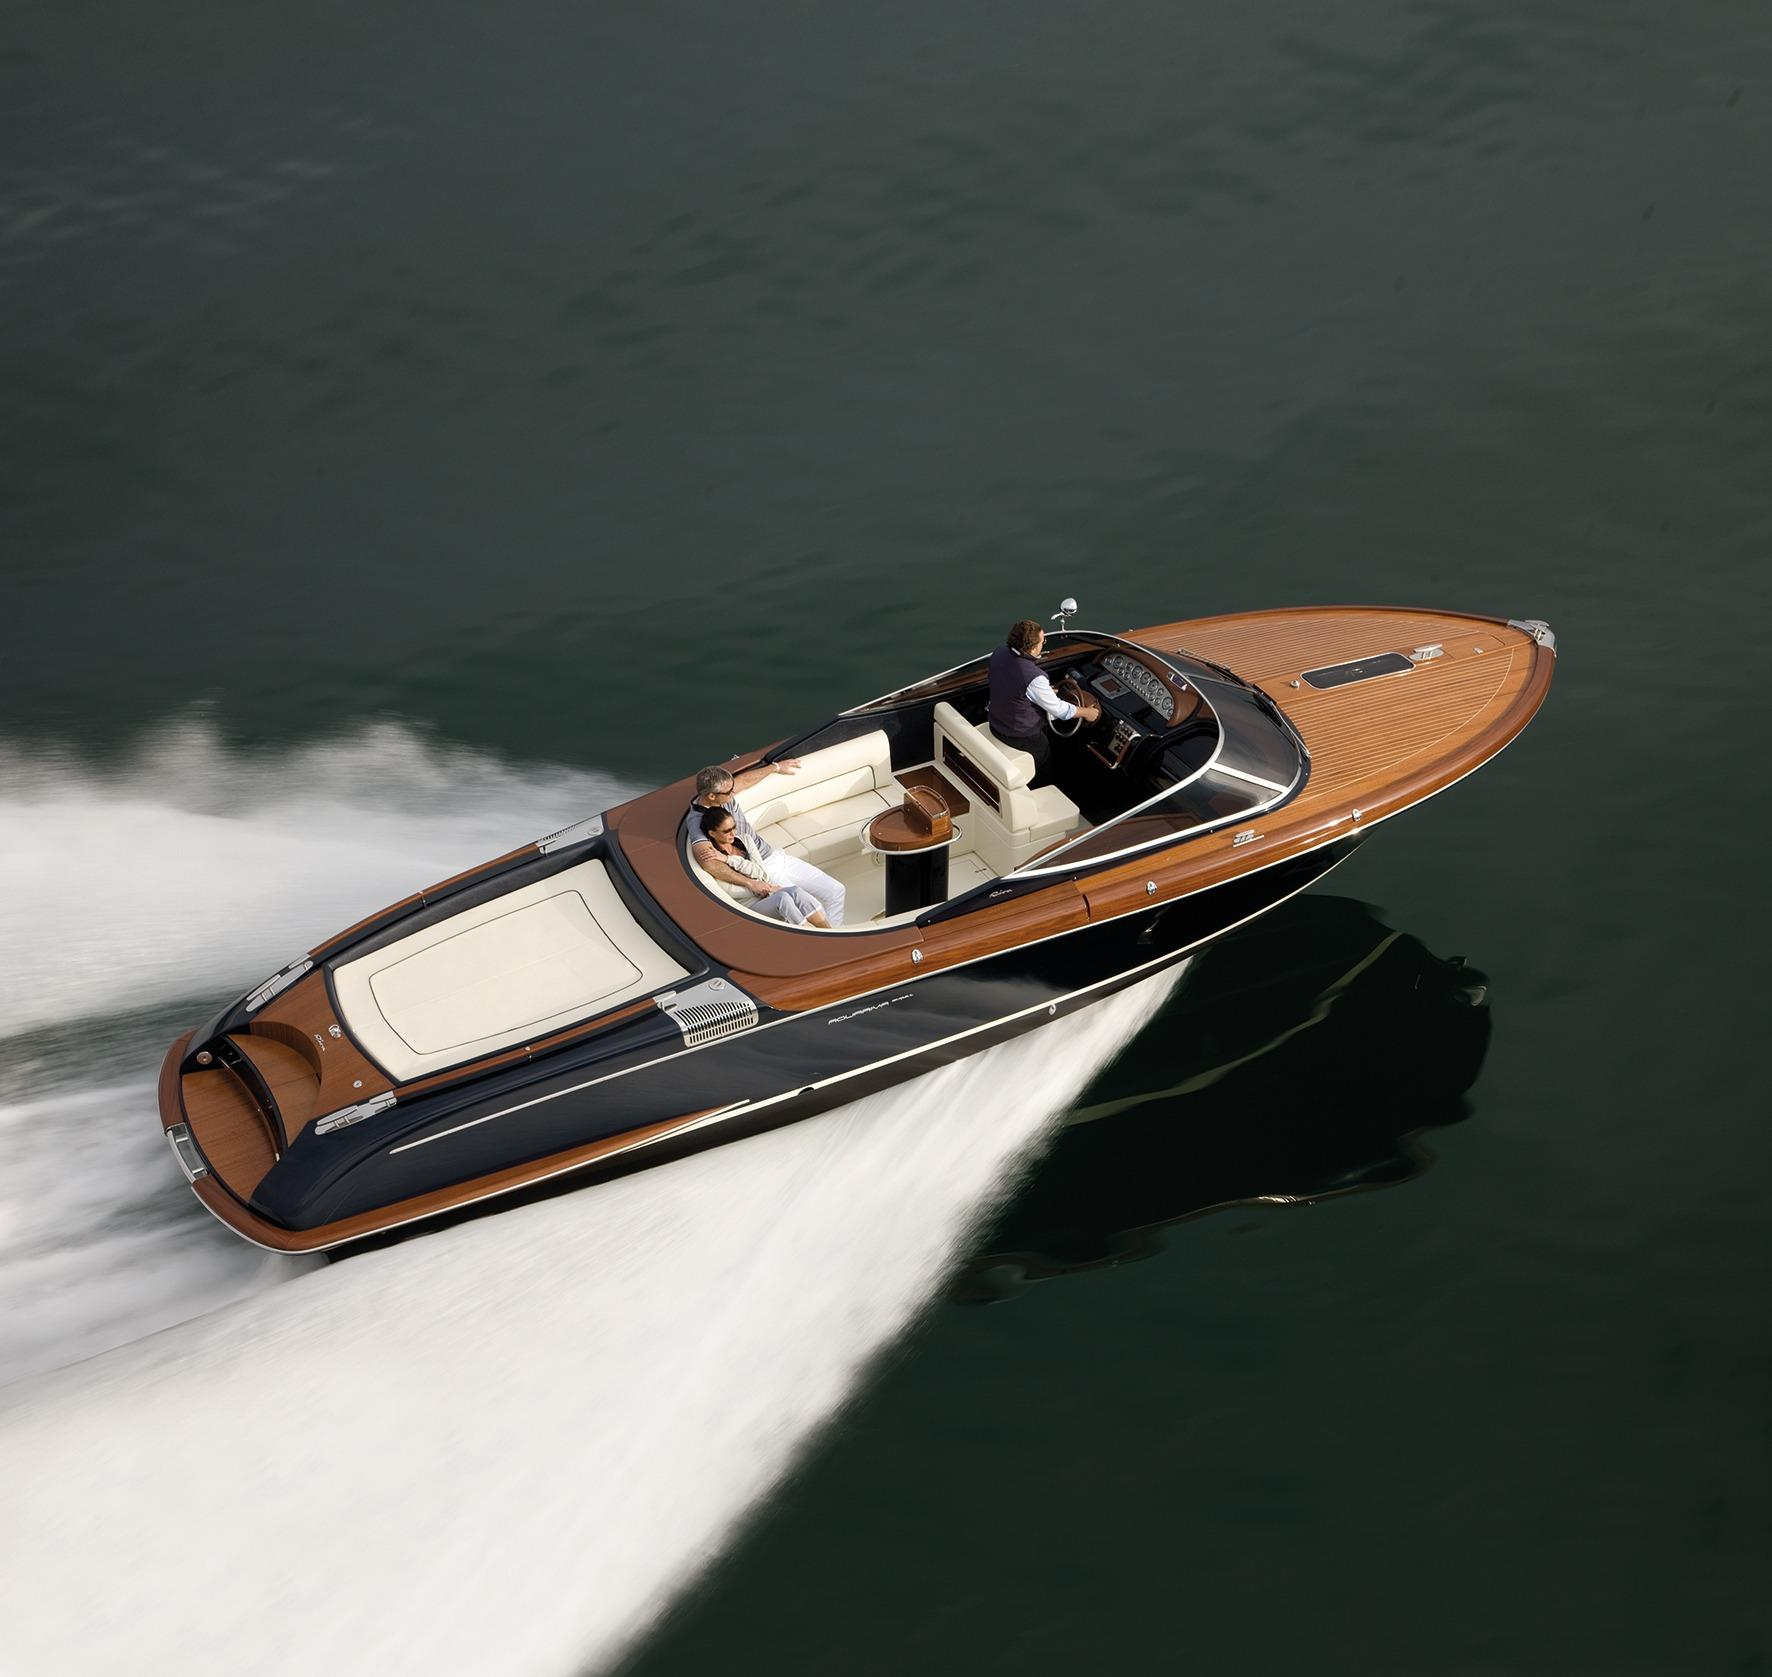 Manufacturer Provided Image: Riva Aquariva Super